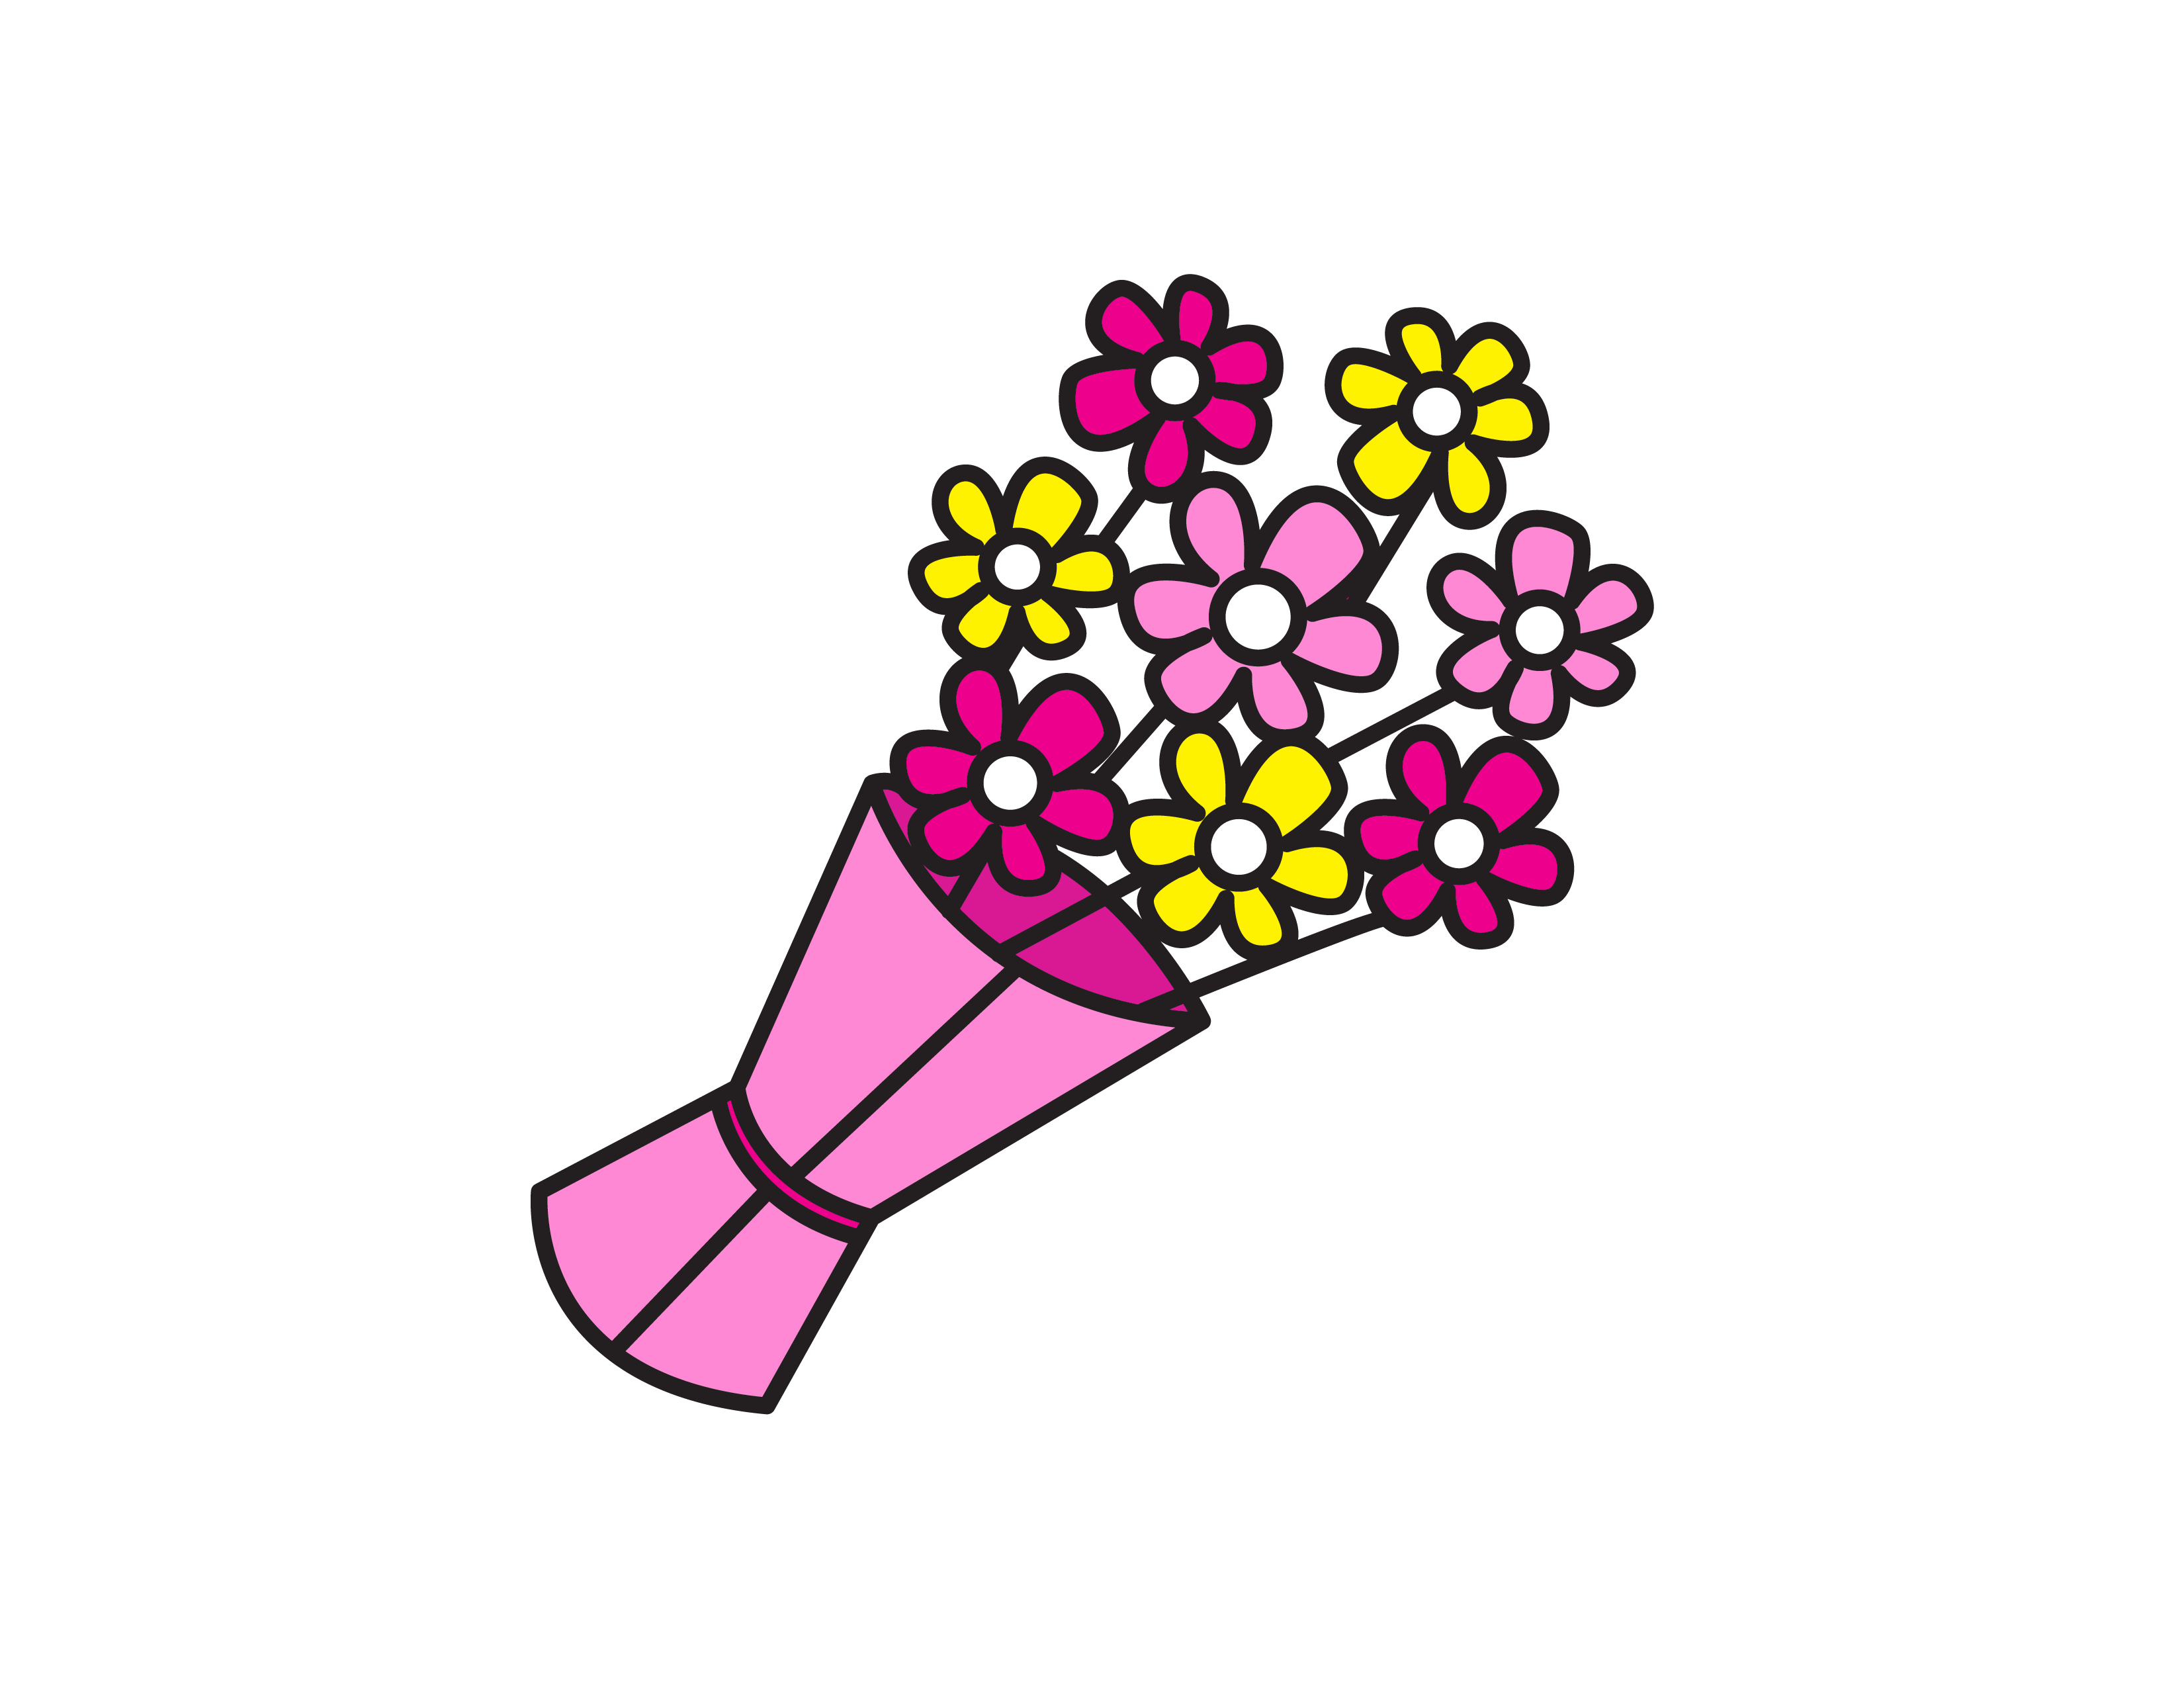 How To Draw Tutorials For Kids: Bouquet of Flowers – Easy Drawing Guide